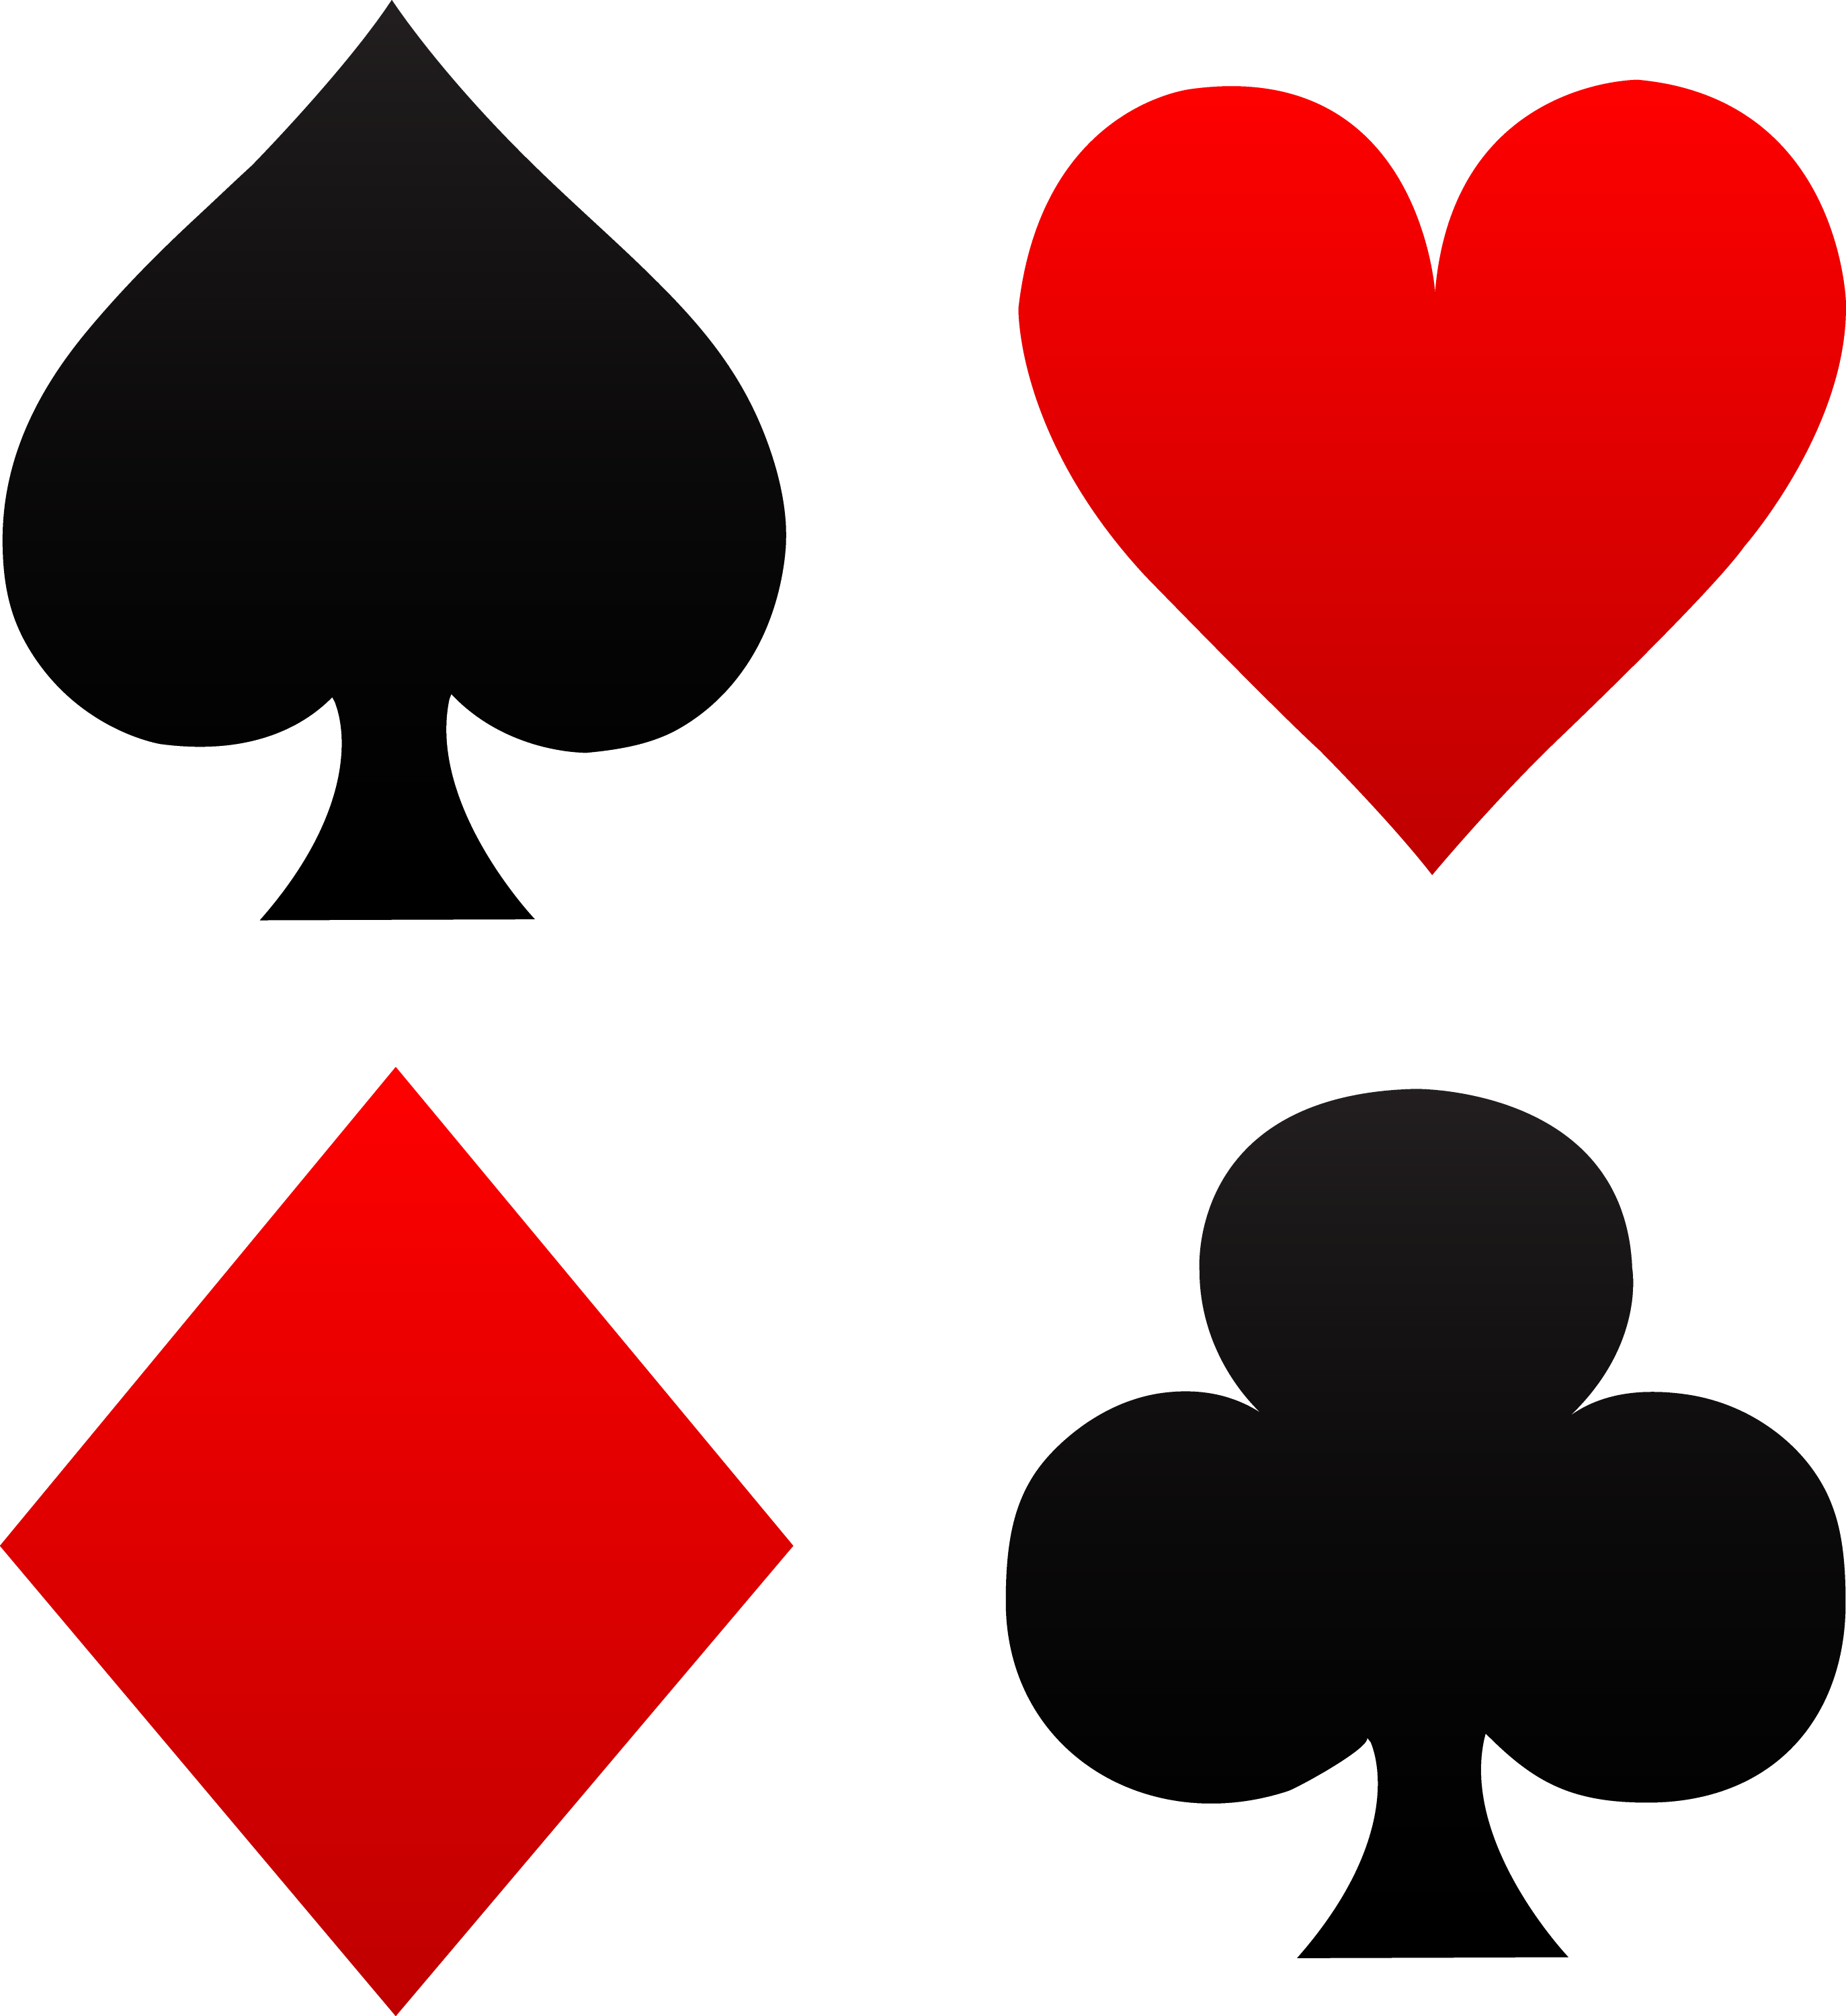 card a playing svg open wikimedia diamond wiki file commons